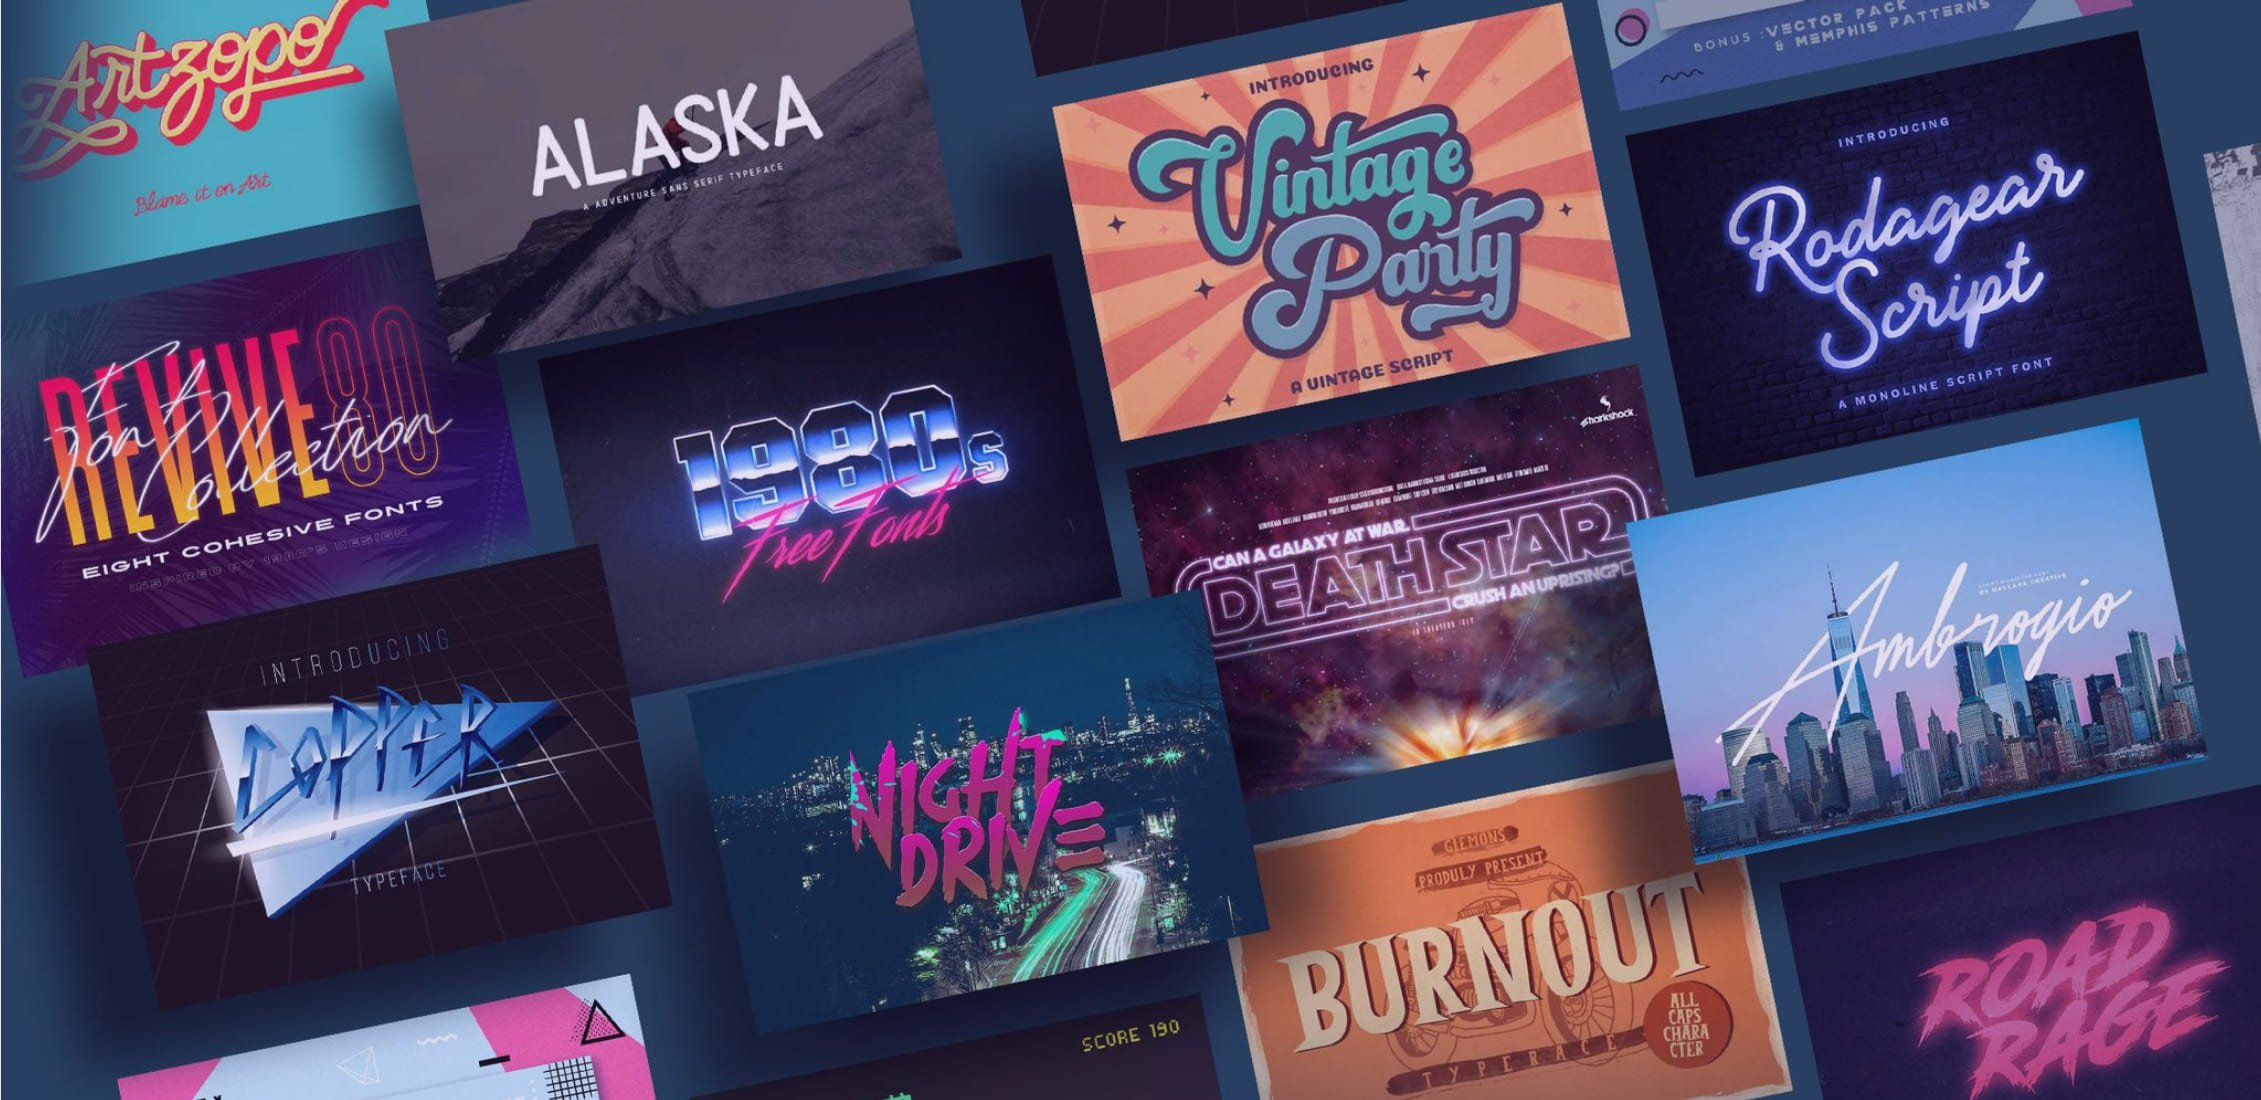 95+ Best Girly Fonts 2021: Free, Premium & Bundles - 1980s fonts